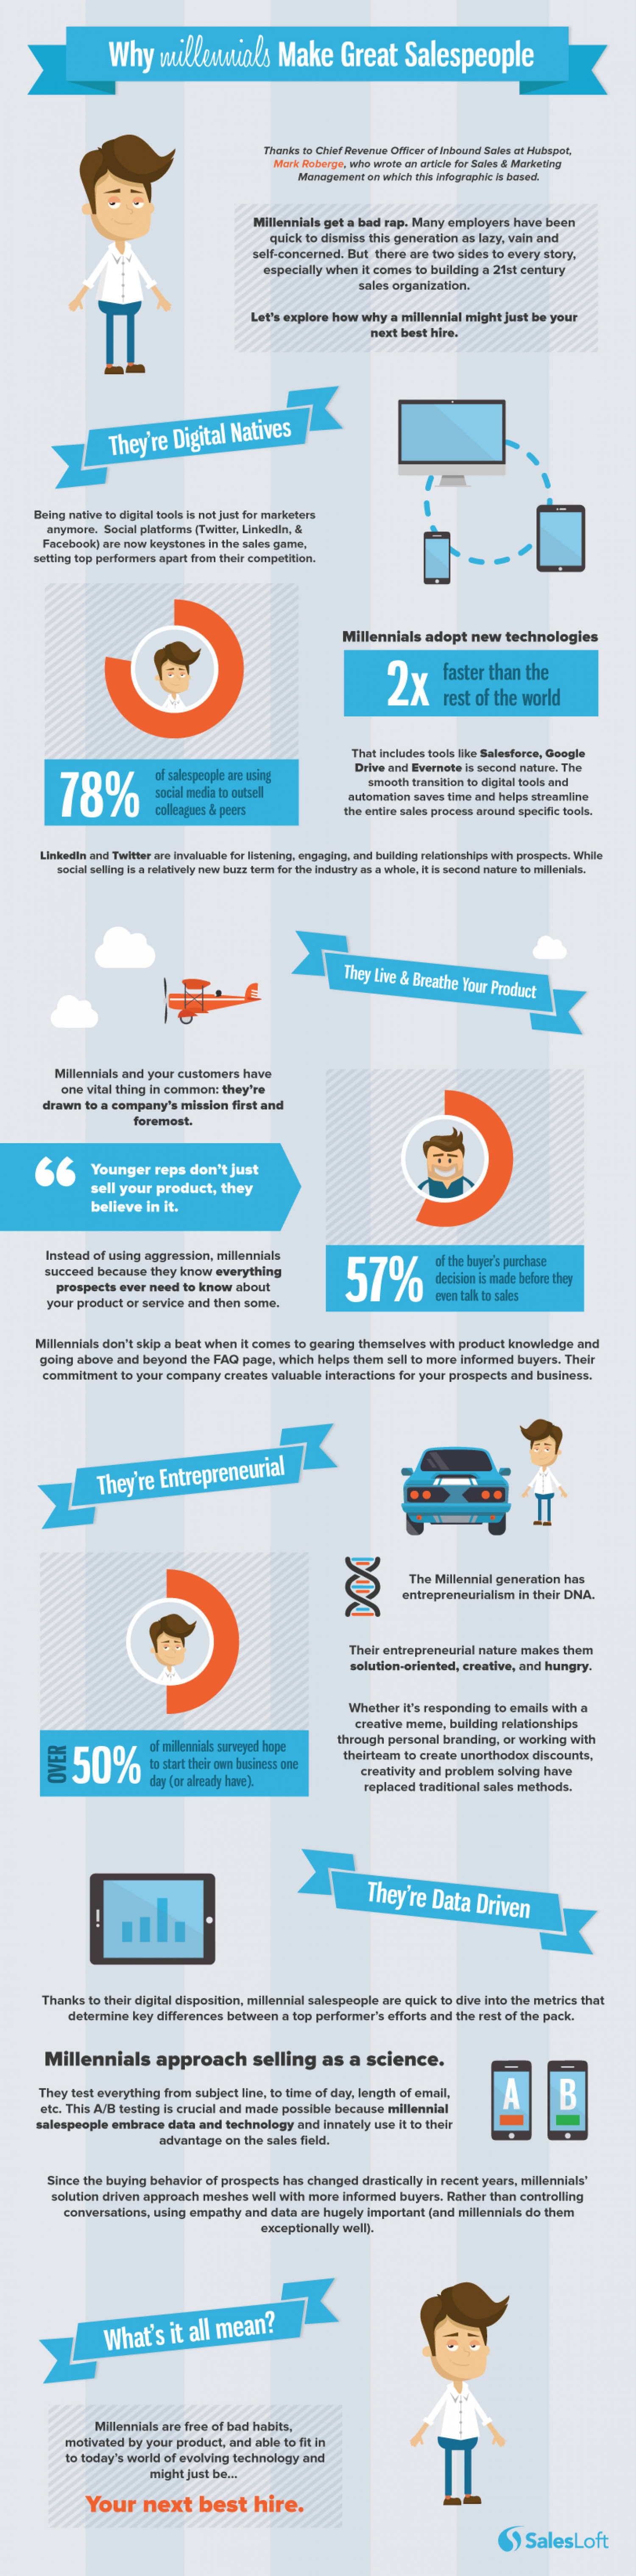 Why Millennials Make Great Salespeople Infographic